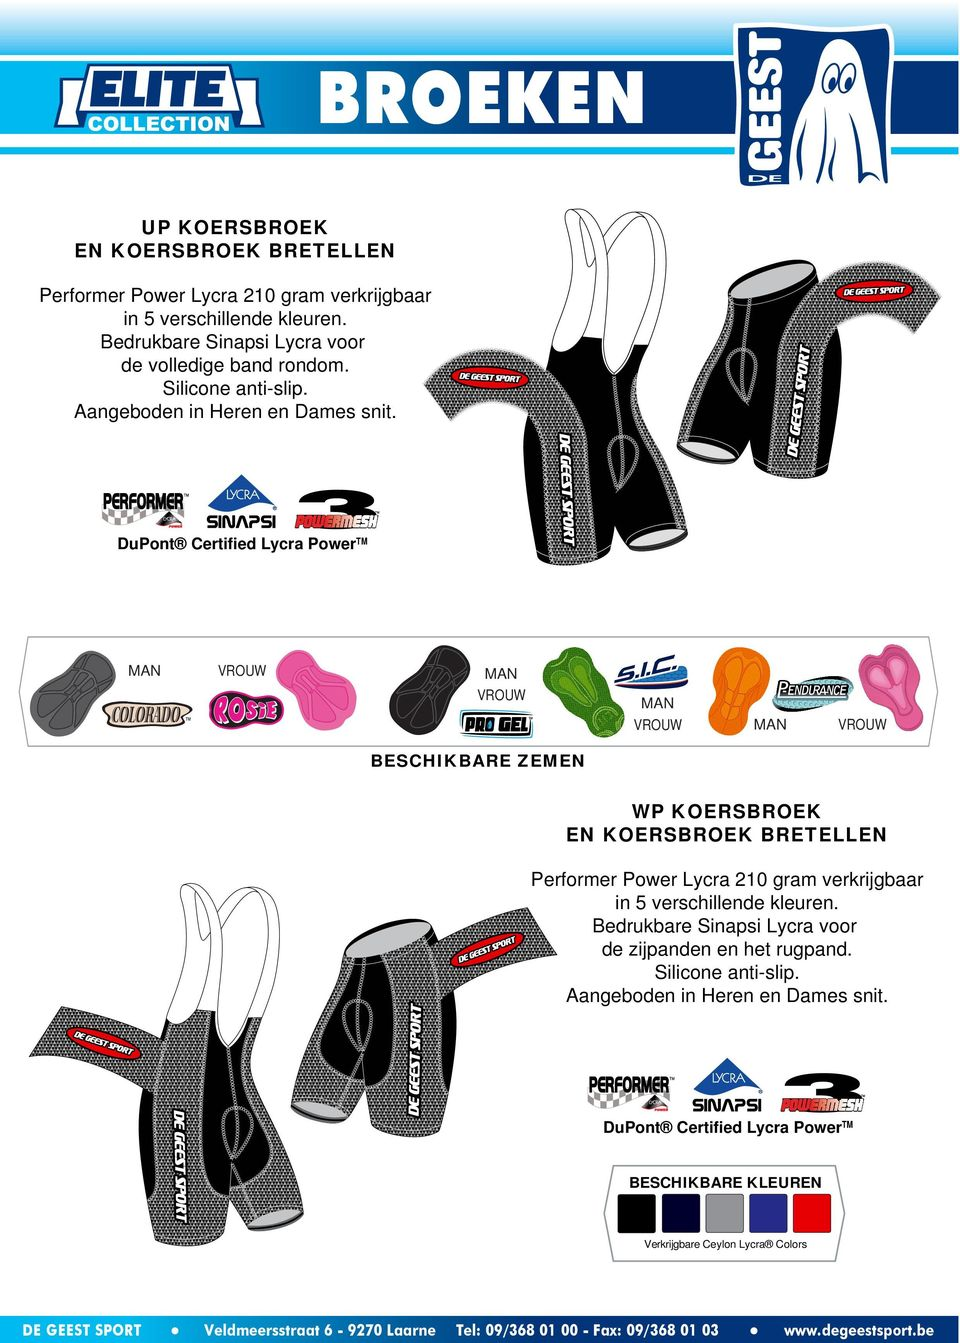 DuPont Certified Lycra Power TM WP KOERSBROEK EN KOERSBROEK BRETELLEN Performer Power Lycra 210 gram verkrijgbaar in 5 verschillende